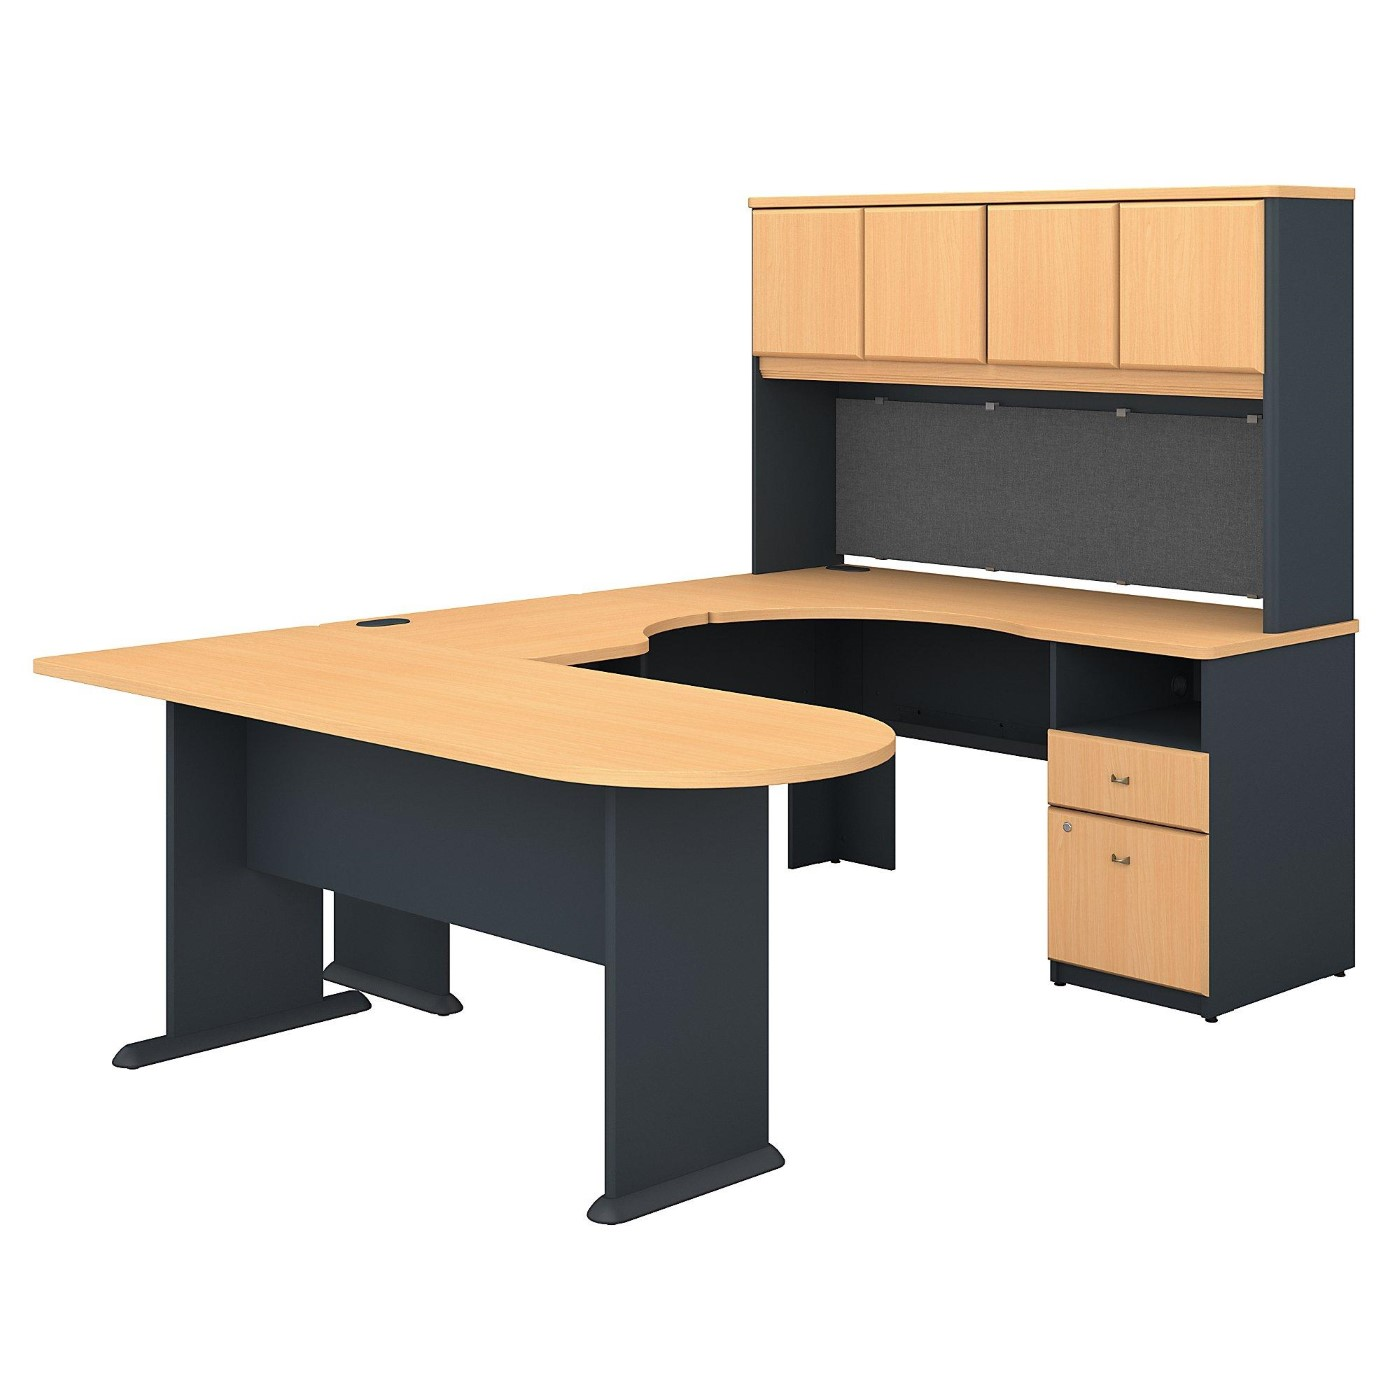 <font color=#c60><b>BUSH BUSINESS FURNITURE SERIES A U SHAPED DESK WITH HUTCH, PENINSULA AND STORAGE. FREE SHIPPING</font></b></font>